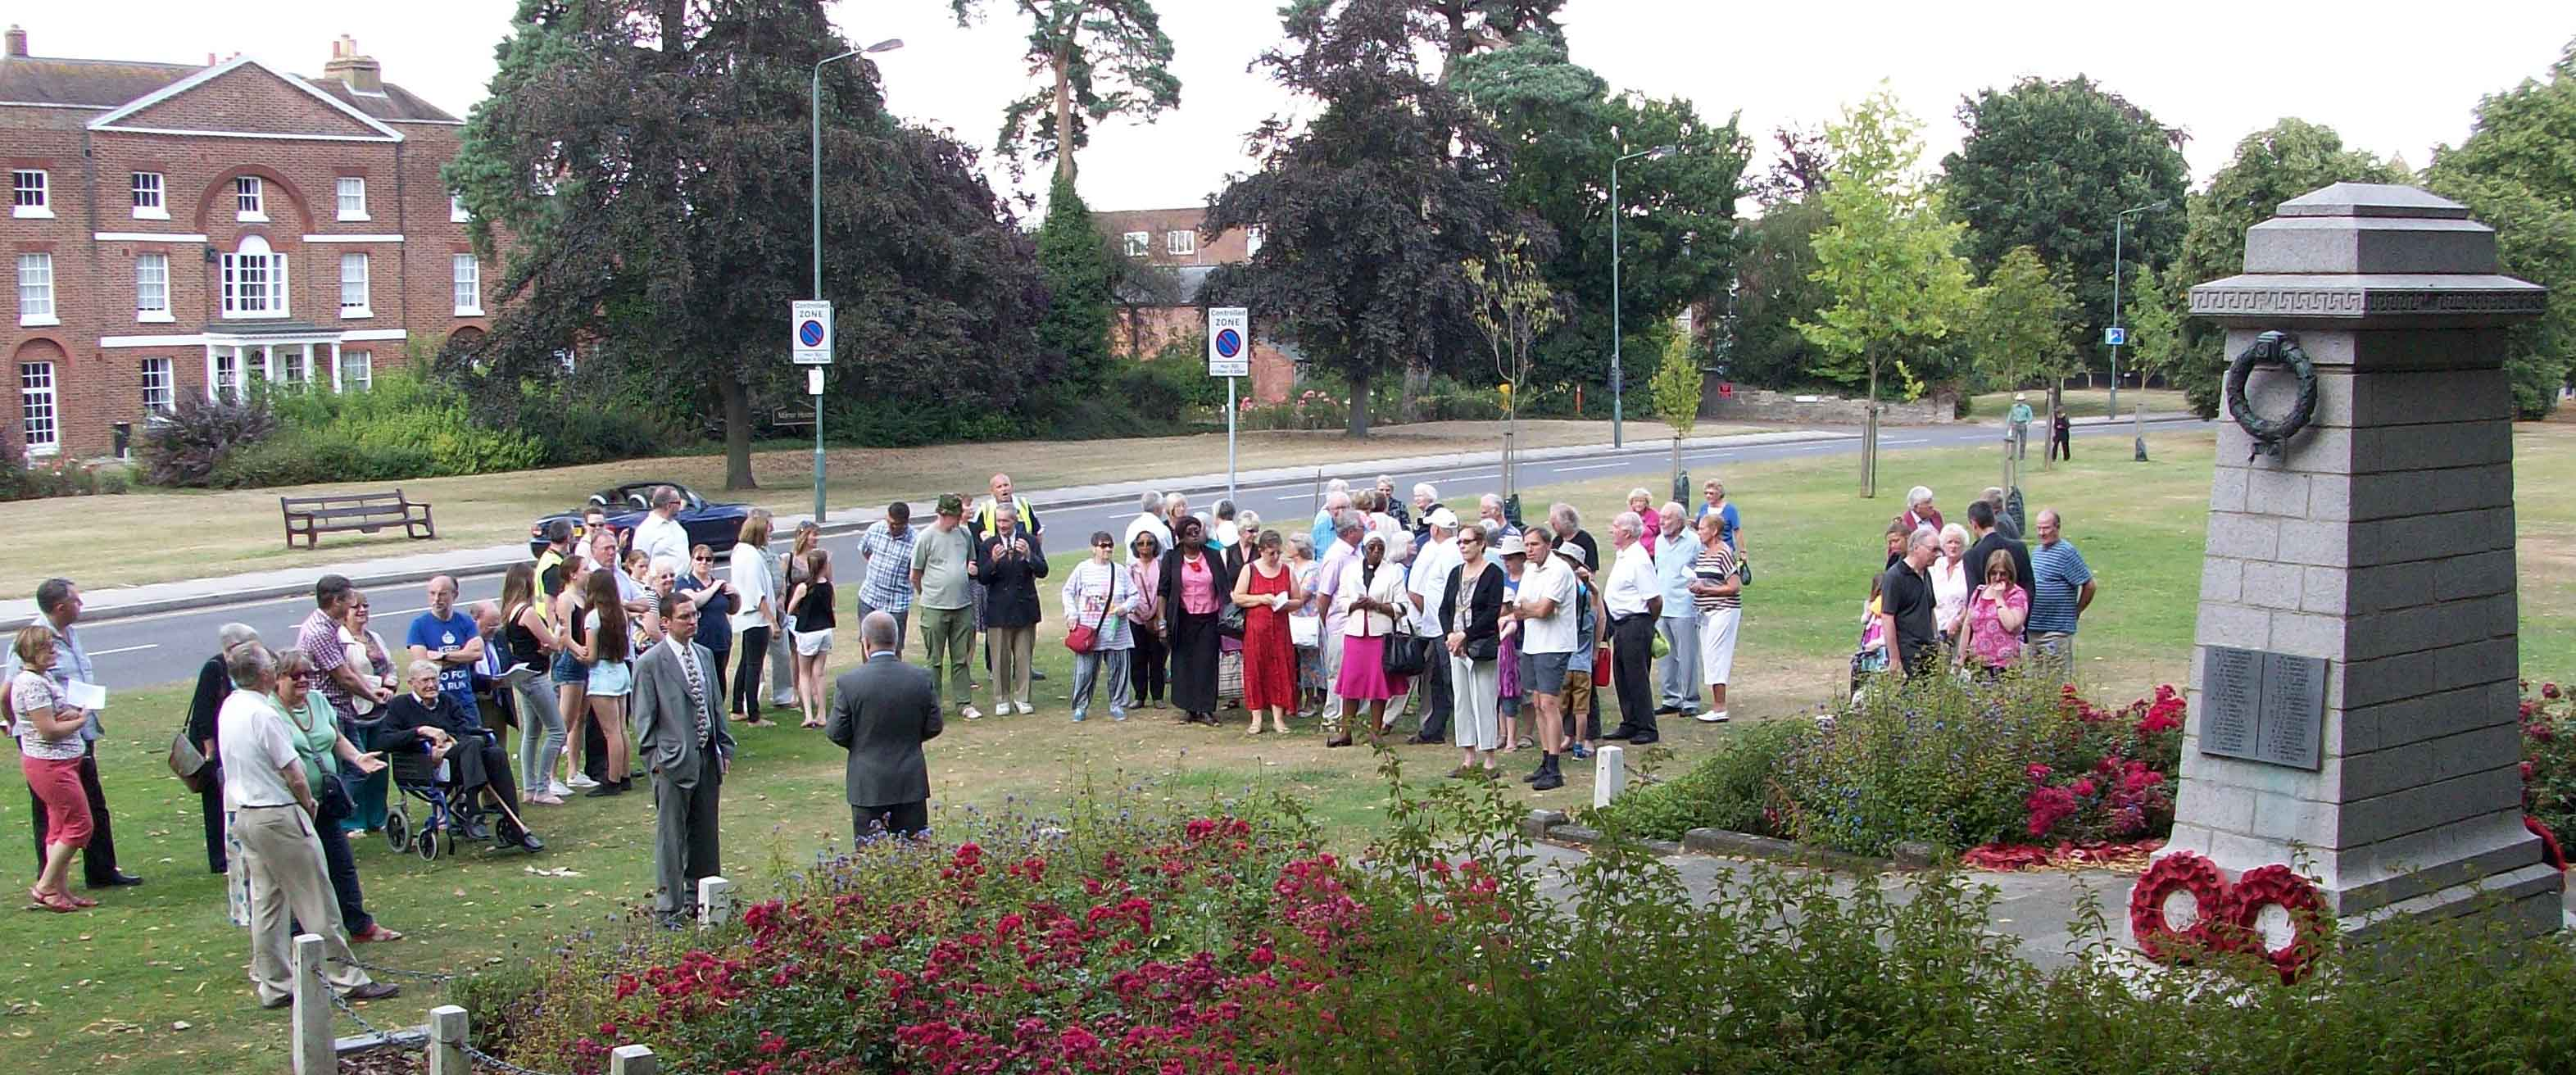 Start of WW1 Memorial, Sidcup